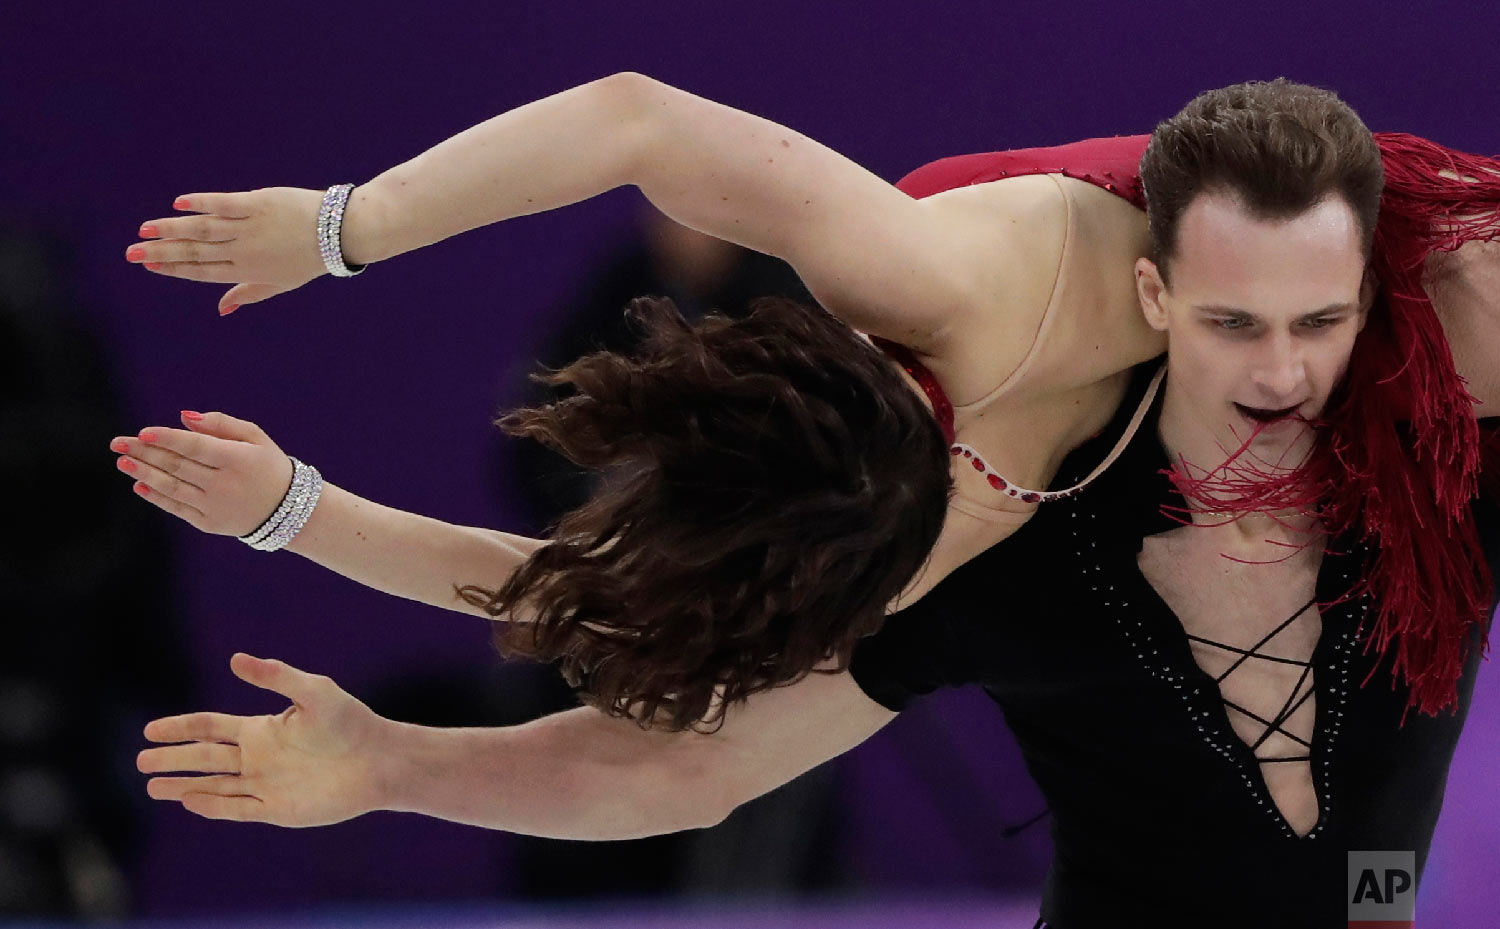 Natalia Kaliszek and Maksym Spodyriev of Poland perform during the ice dance, short dance figure skating in the Gangneung Ice Arena at the 2018 Winter Olympics in Gangneung, South Korea, Monday, Feb. 19, 2018. (AP Photo/Julie Jacobson)